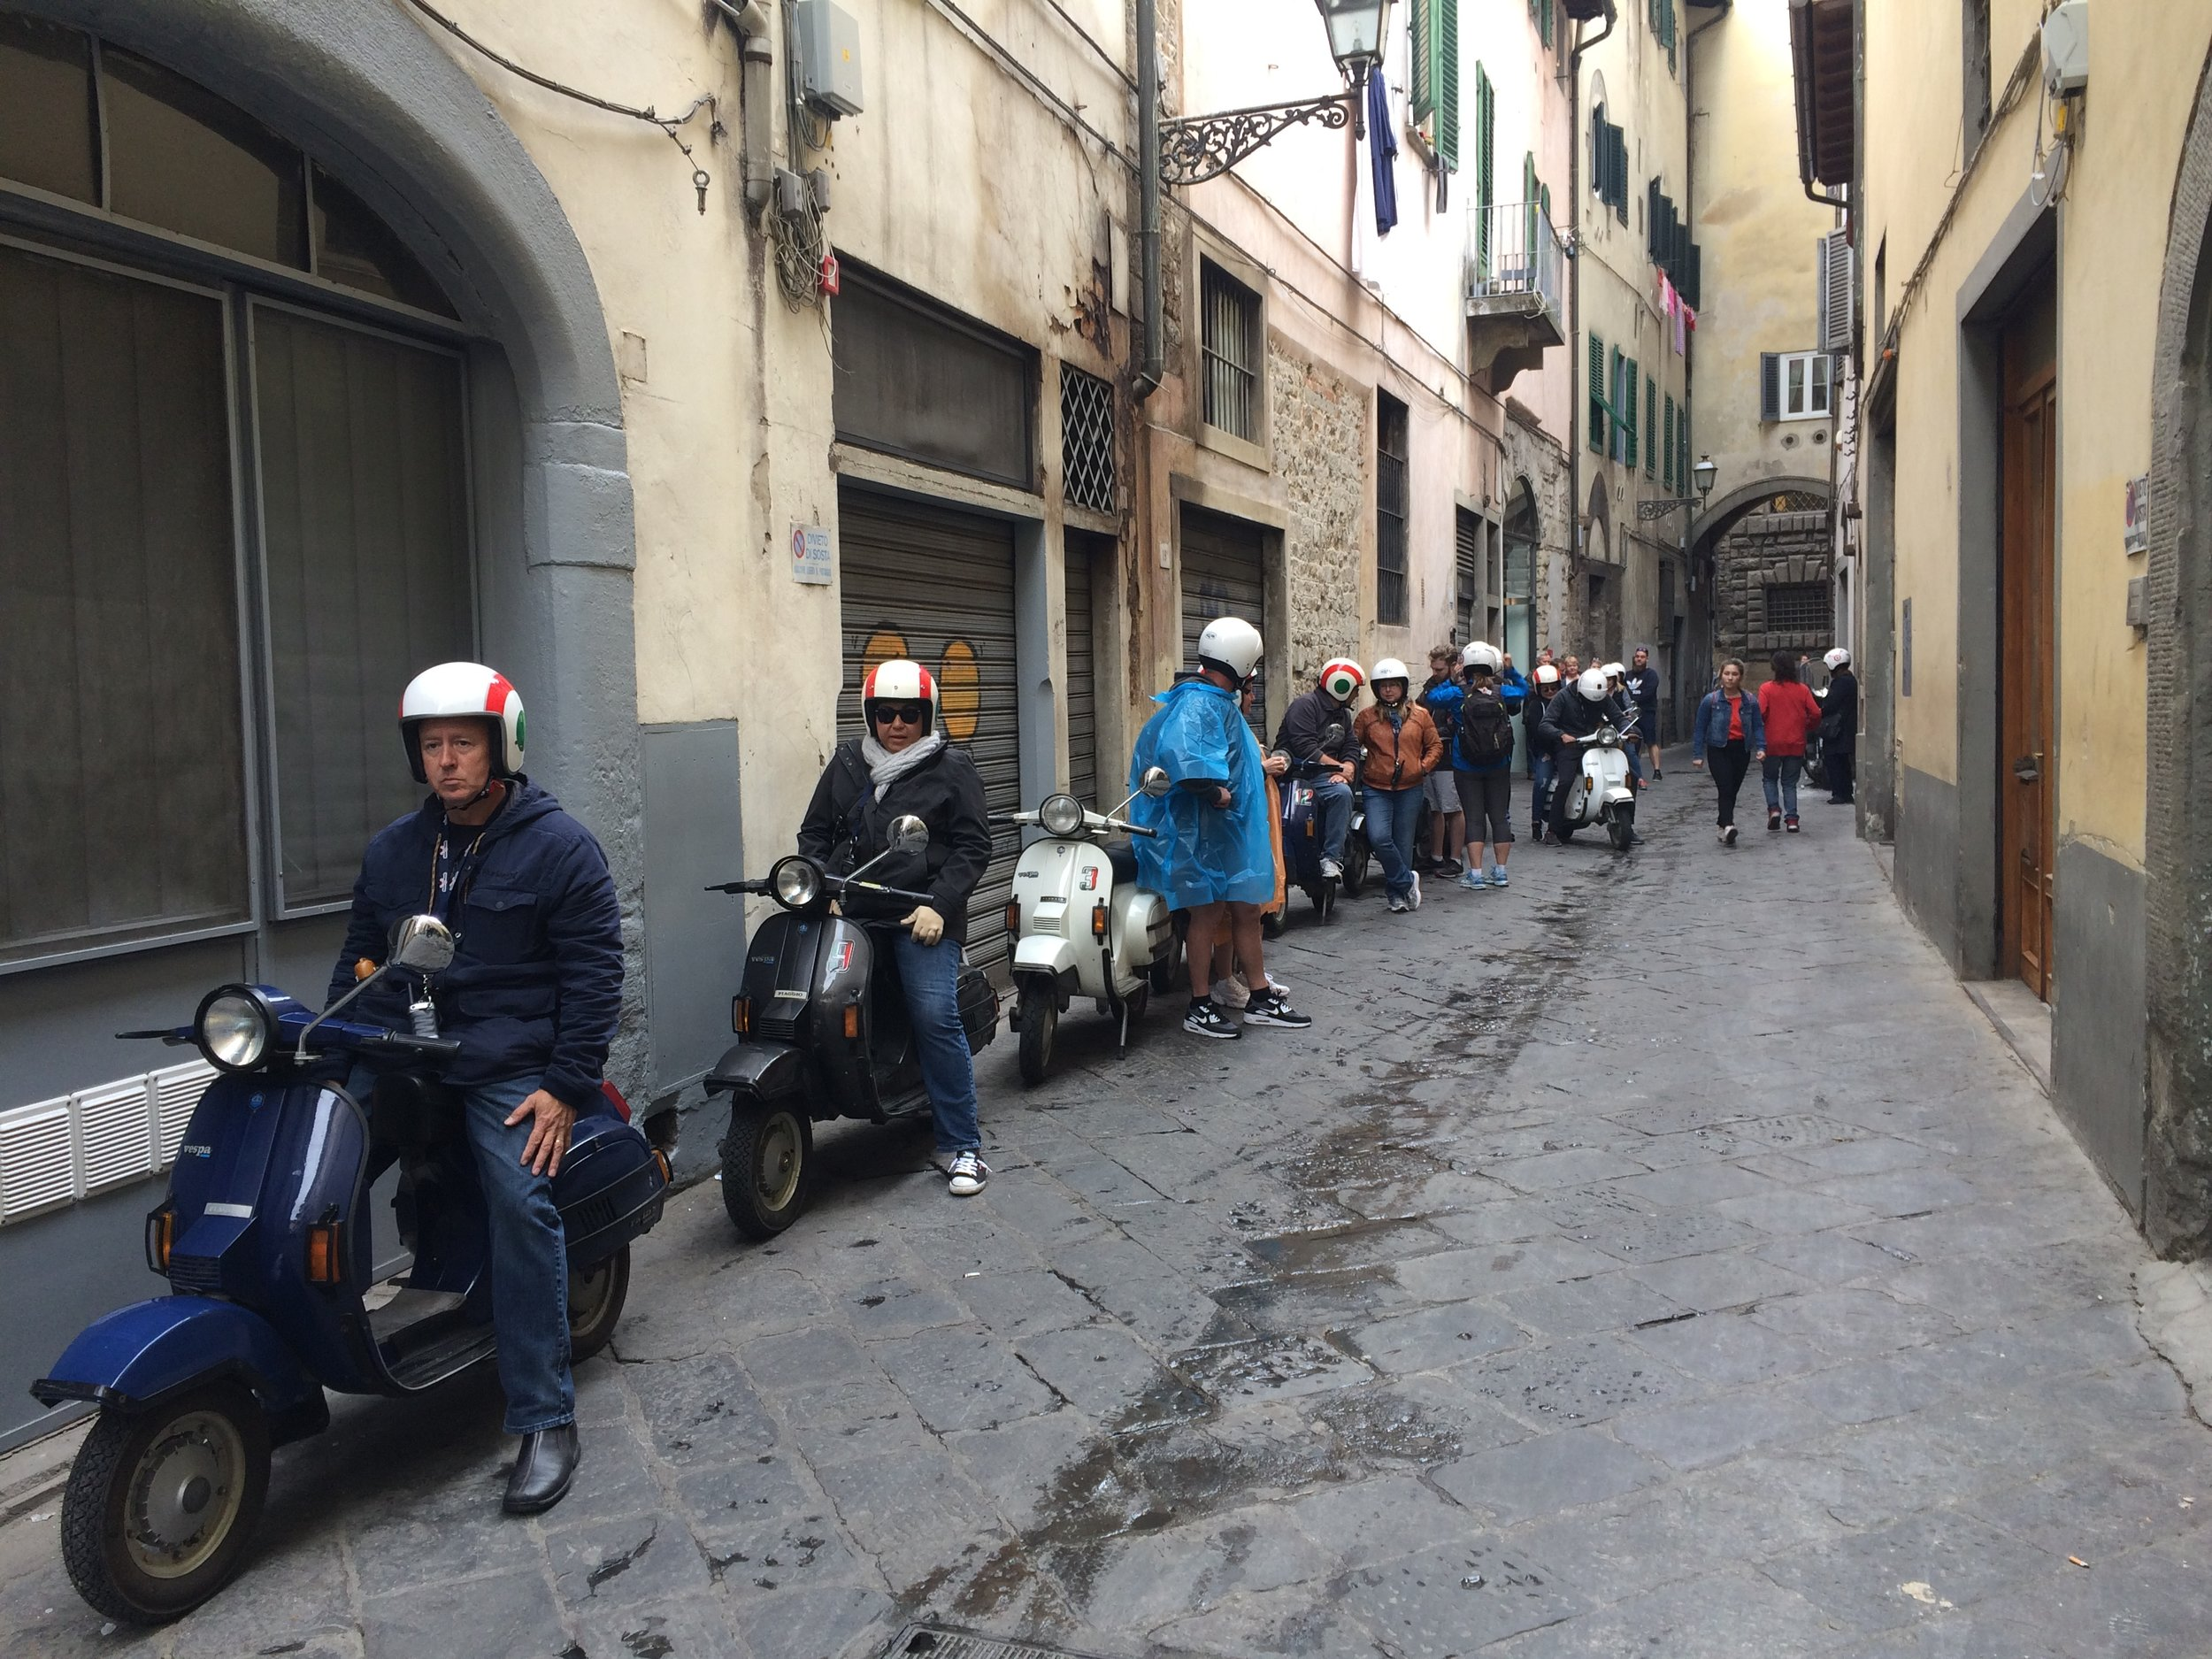 Florence Vespa tour getting ready to leave - photo by Paul Hart October 2018